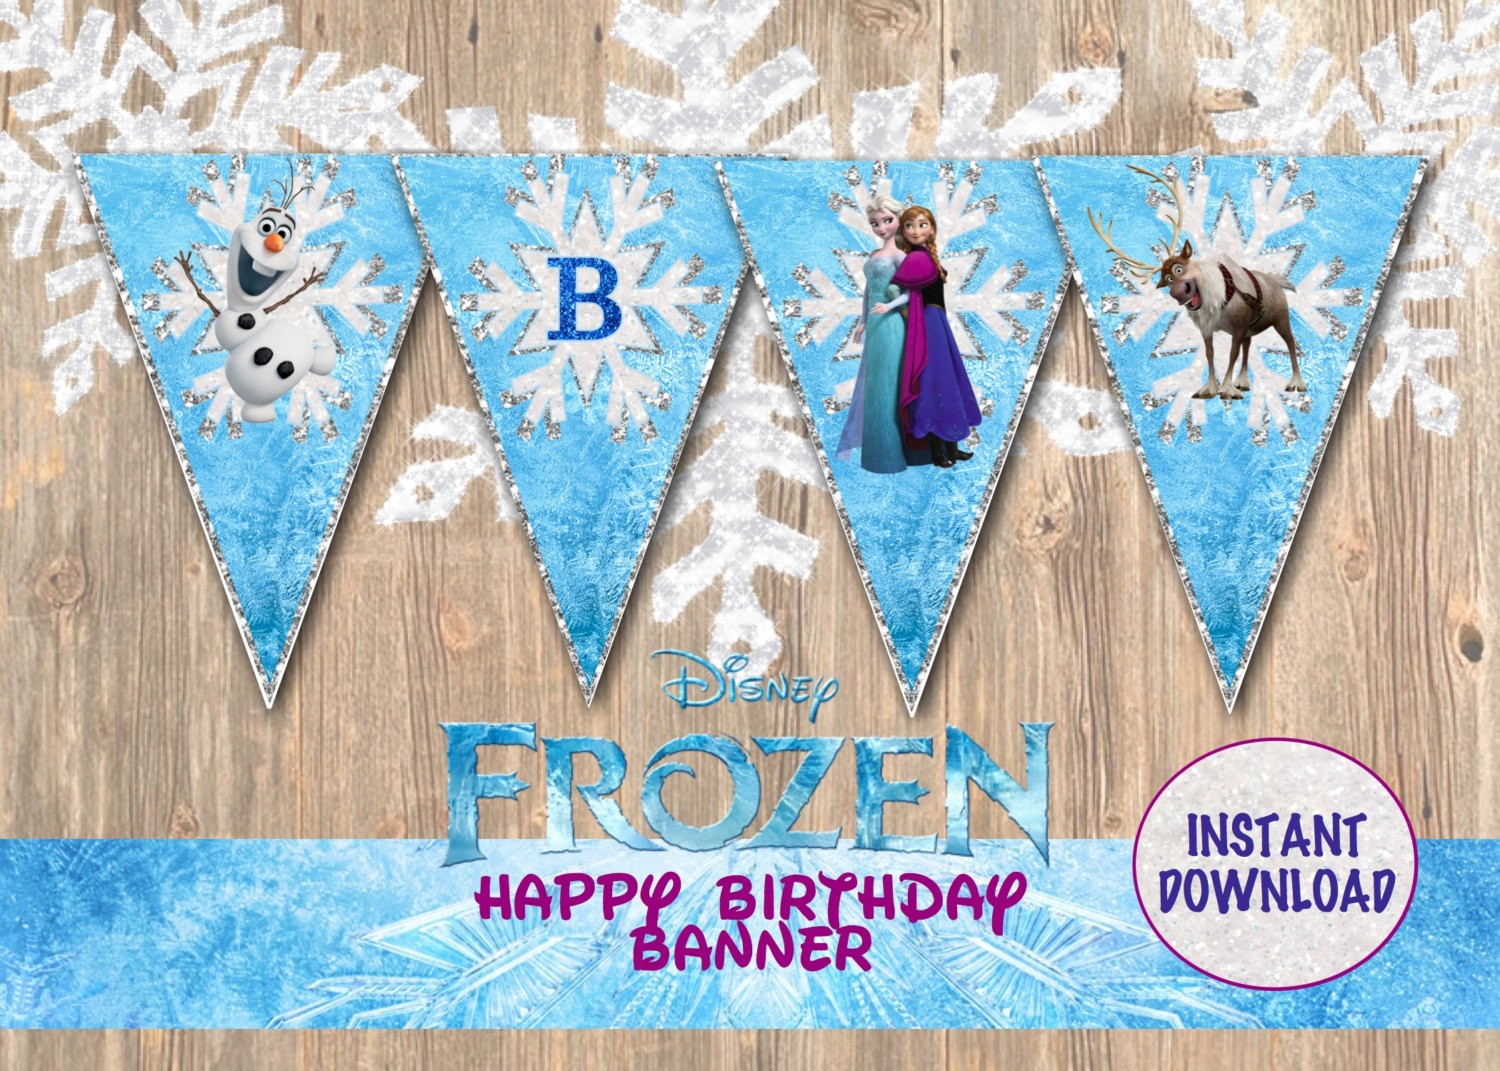 frozen themed birthday banner ; 2014%2520party%2520favors%2520-%2520frozen%2520birthday%2520banner%2520frozen%2520banner%2520frozen-f76274